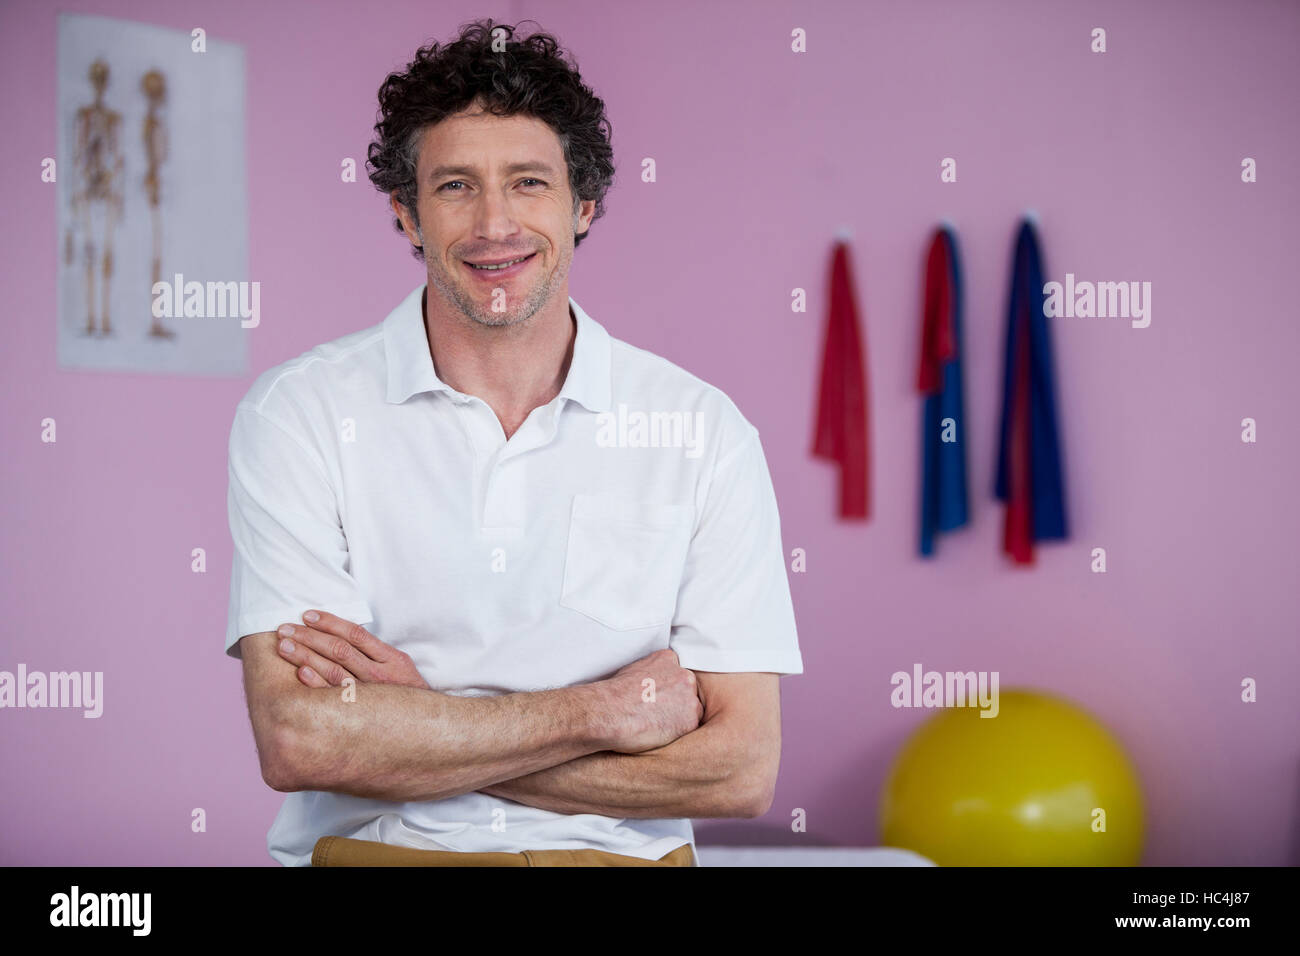 Portrait of physiotherapist standing with arms crossed - Stock Image